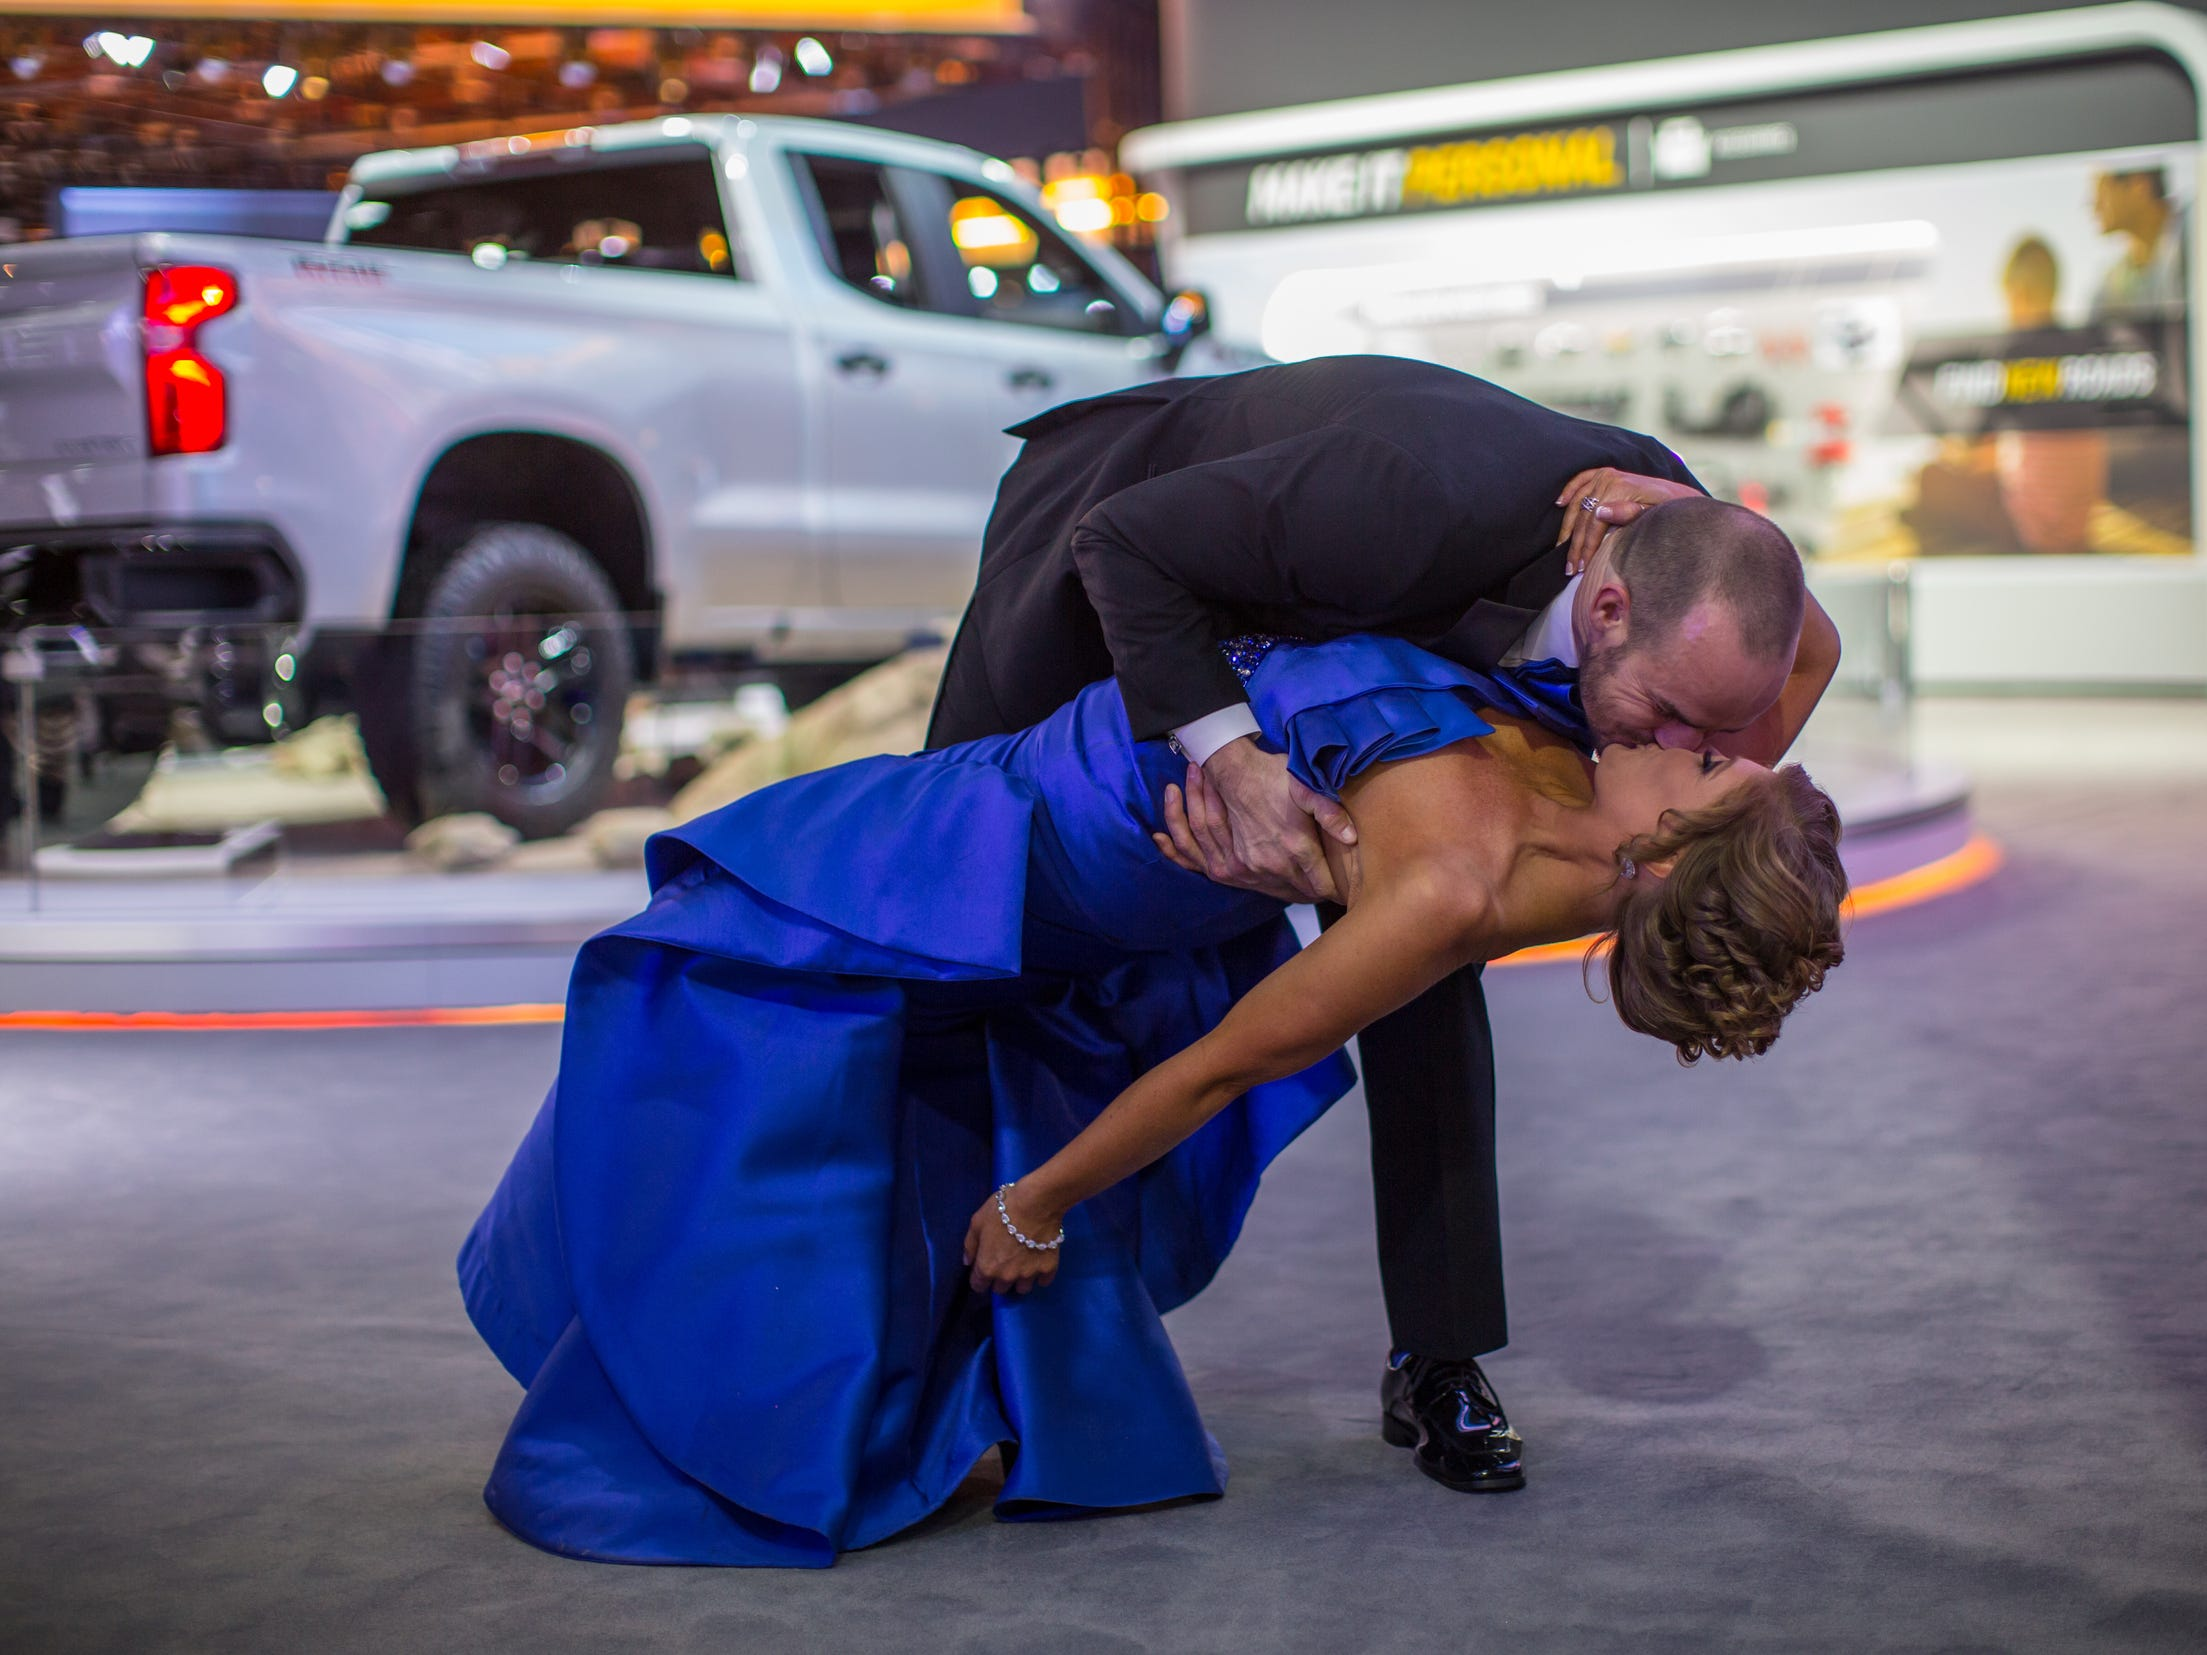 Marie Anderson of Clinton Township is dipped for a photo by Brian Rush of East Lansing during the 2019 North American International Auto Show Charity Preview at Cobo Center in Detroit on Friday, January 18, 2019.